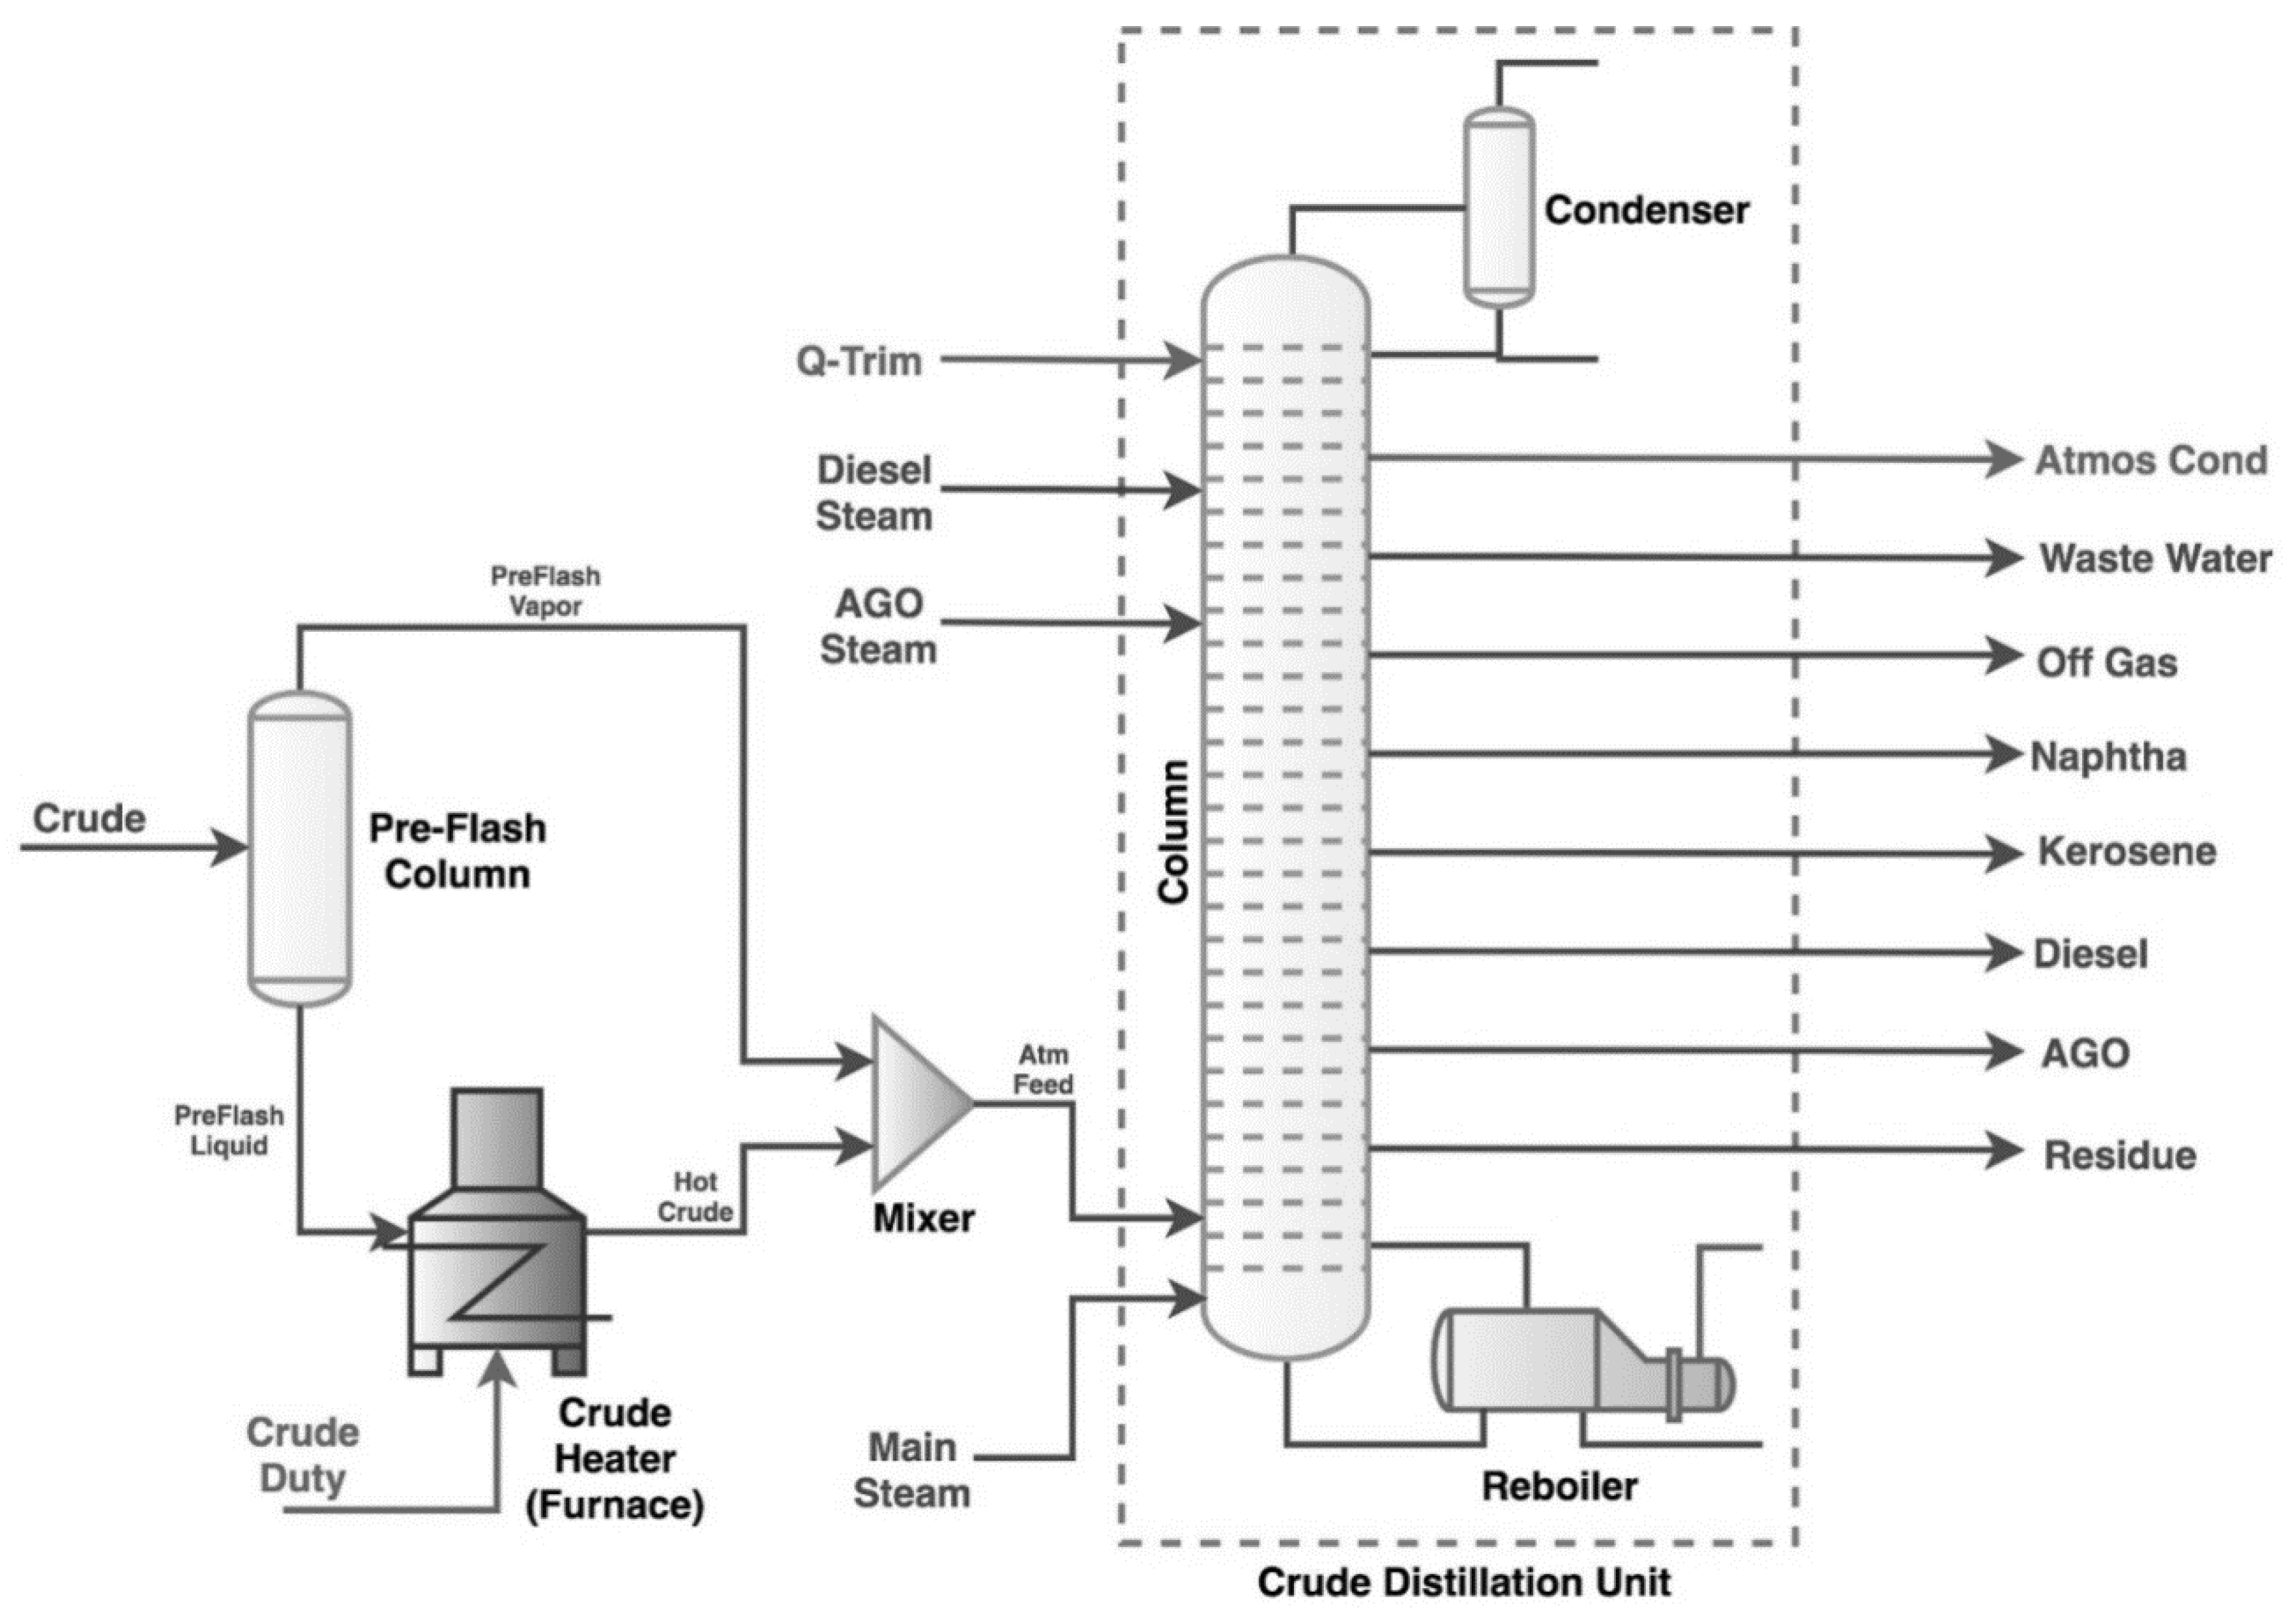 Energies Free Full Text An Artificial Intelligence Method For Process Flow Diagram Html No